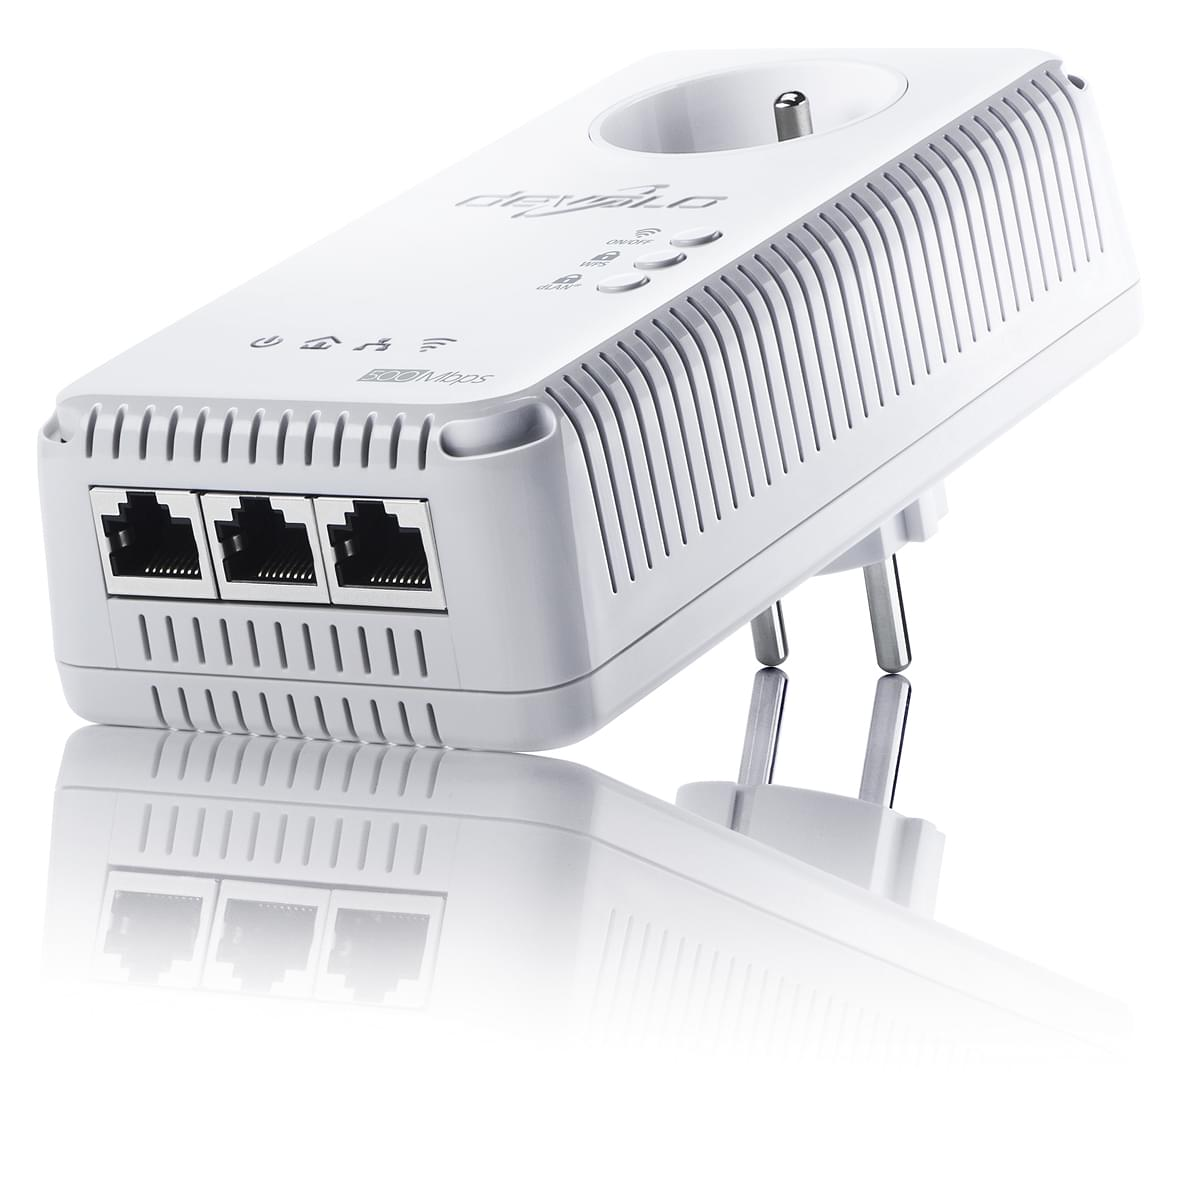 Devolo dLAN 500 AV Wireless+ - 01828 - Adaptateur CPL - 0